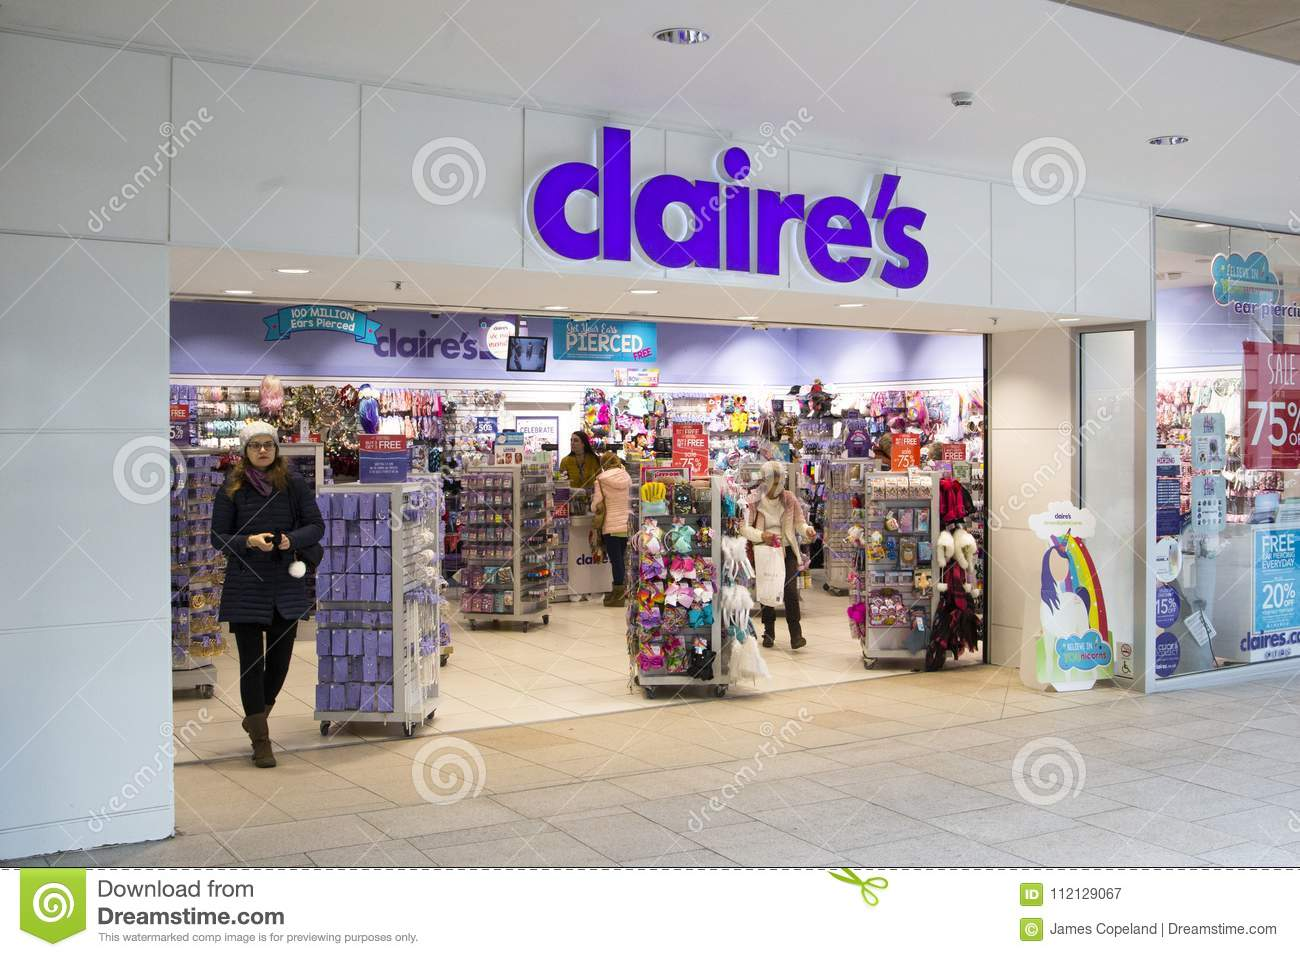 claire's stores stock symbol - HD1300×957